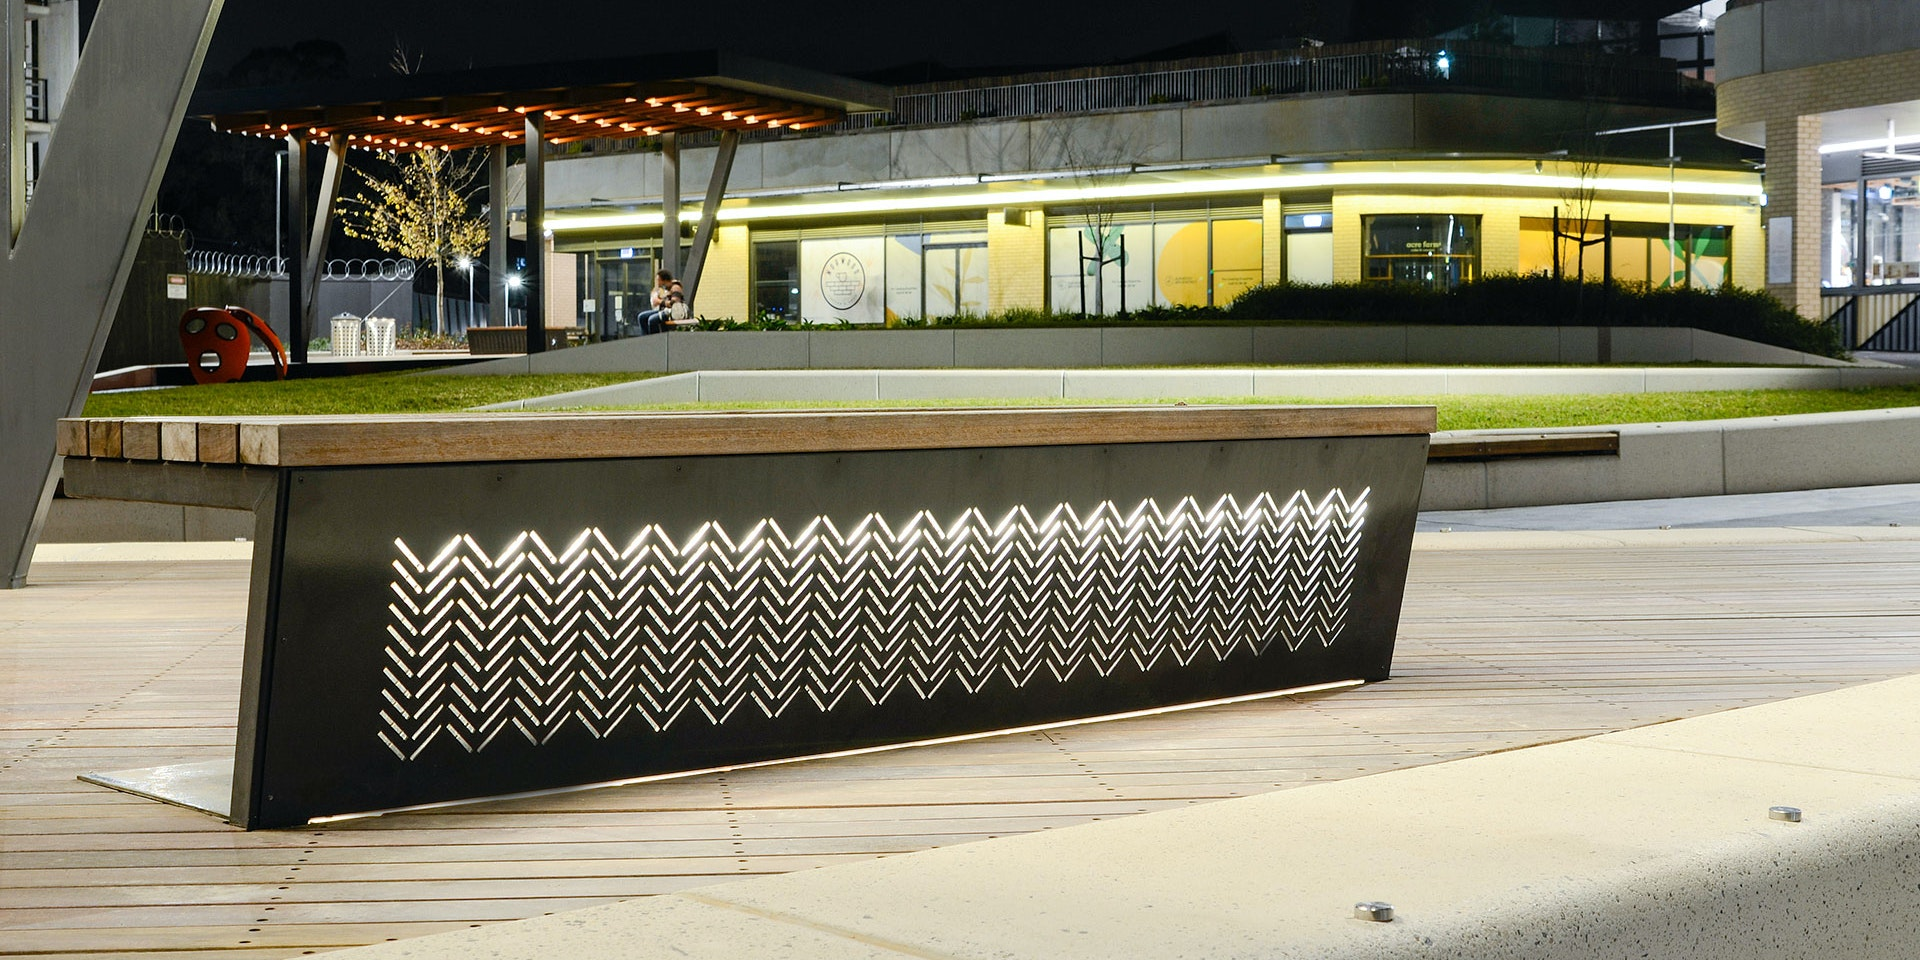 High-performance outdoor LED strip Alto IP in application, installed in Burwood Brickworks Pavilions in Melbourne. Architectural LED Lighting for outdoor applications.